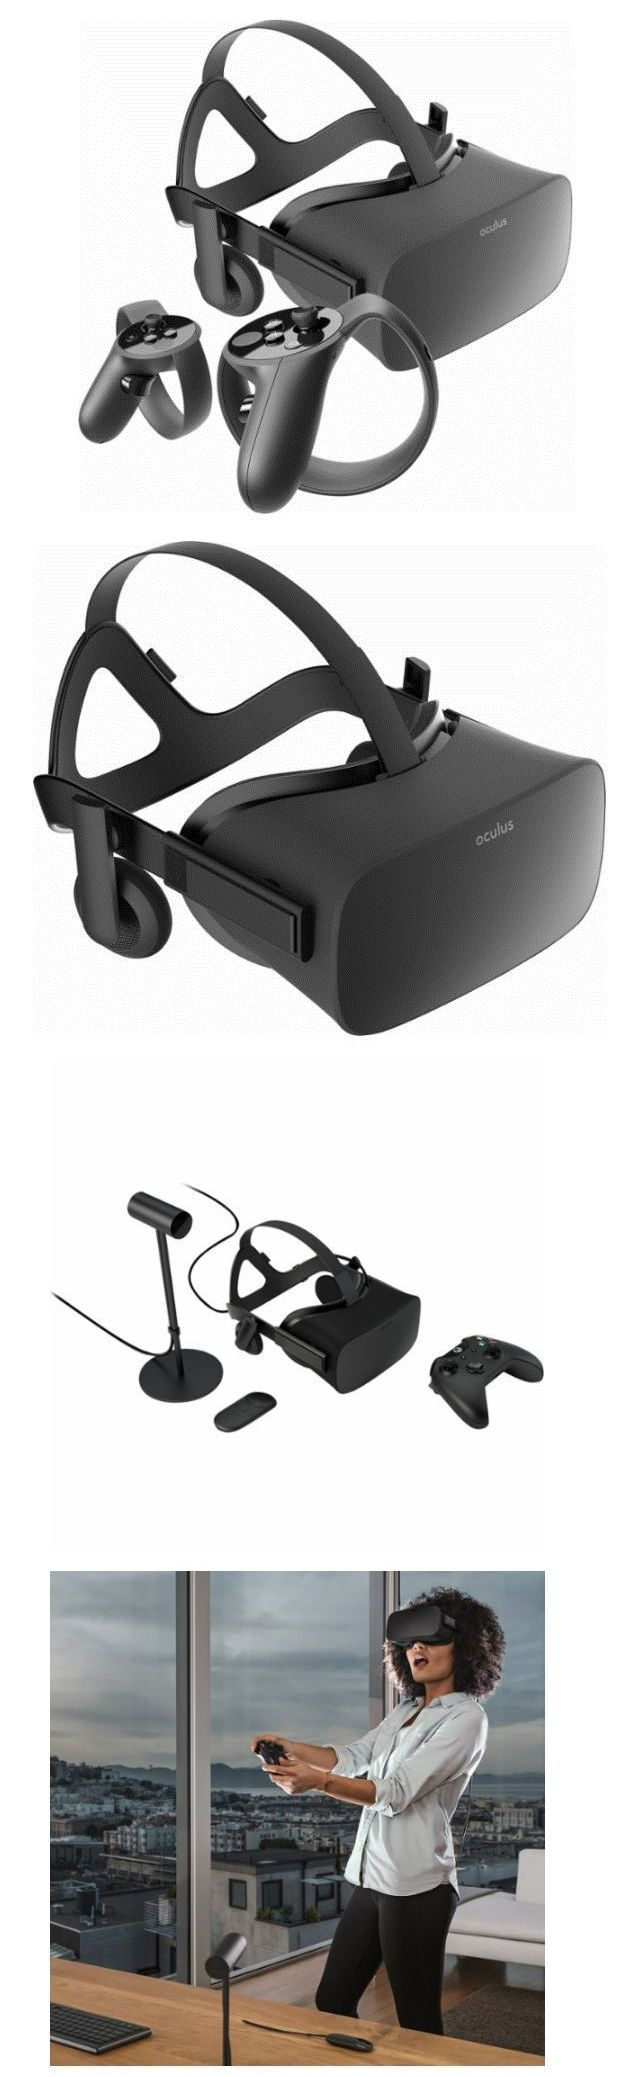 PC and Console VR Headsets: Oculus Rift Virtual-Reality Immersive Headset Touch Wireless Controllers Package -> BUY IT NOW ONLY: $899.99 on eBay!